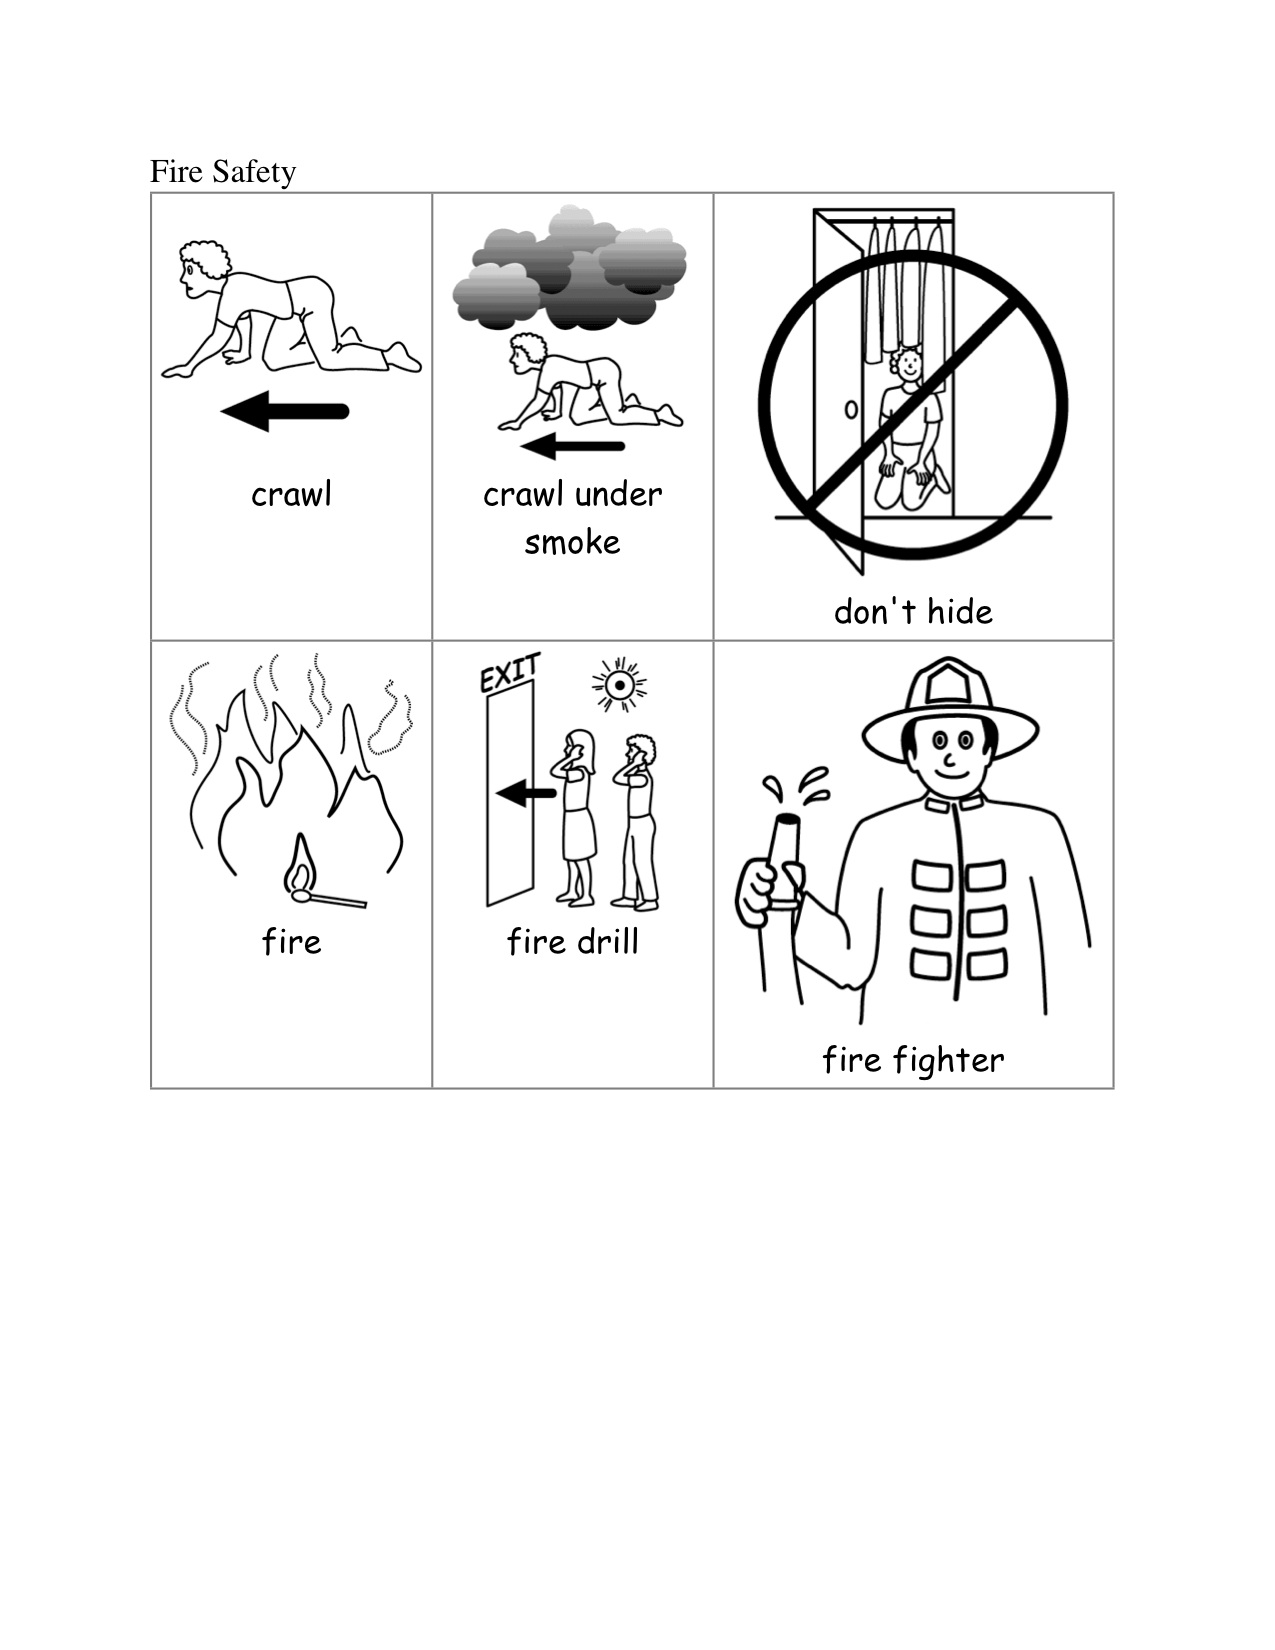 Fire Safety Worksheets For Kids Davezan – Fire Safety Worksheets for Kindergarten